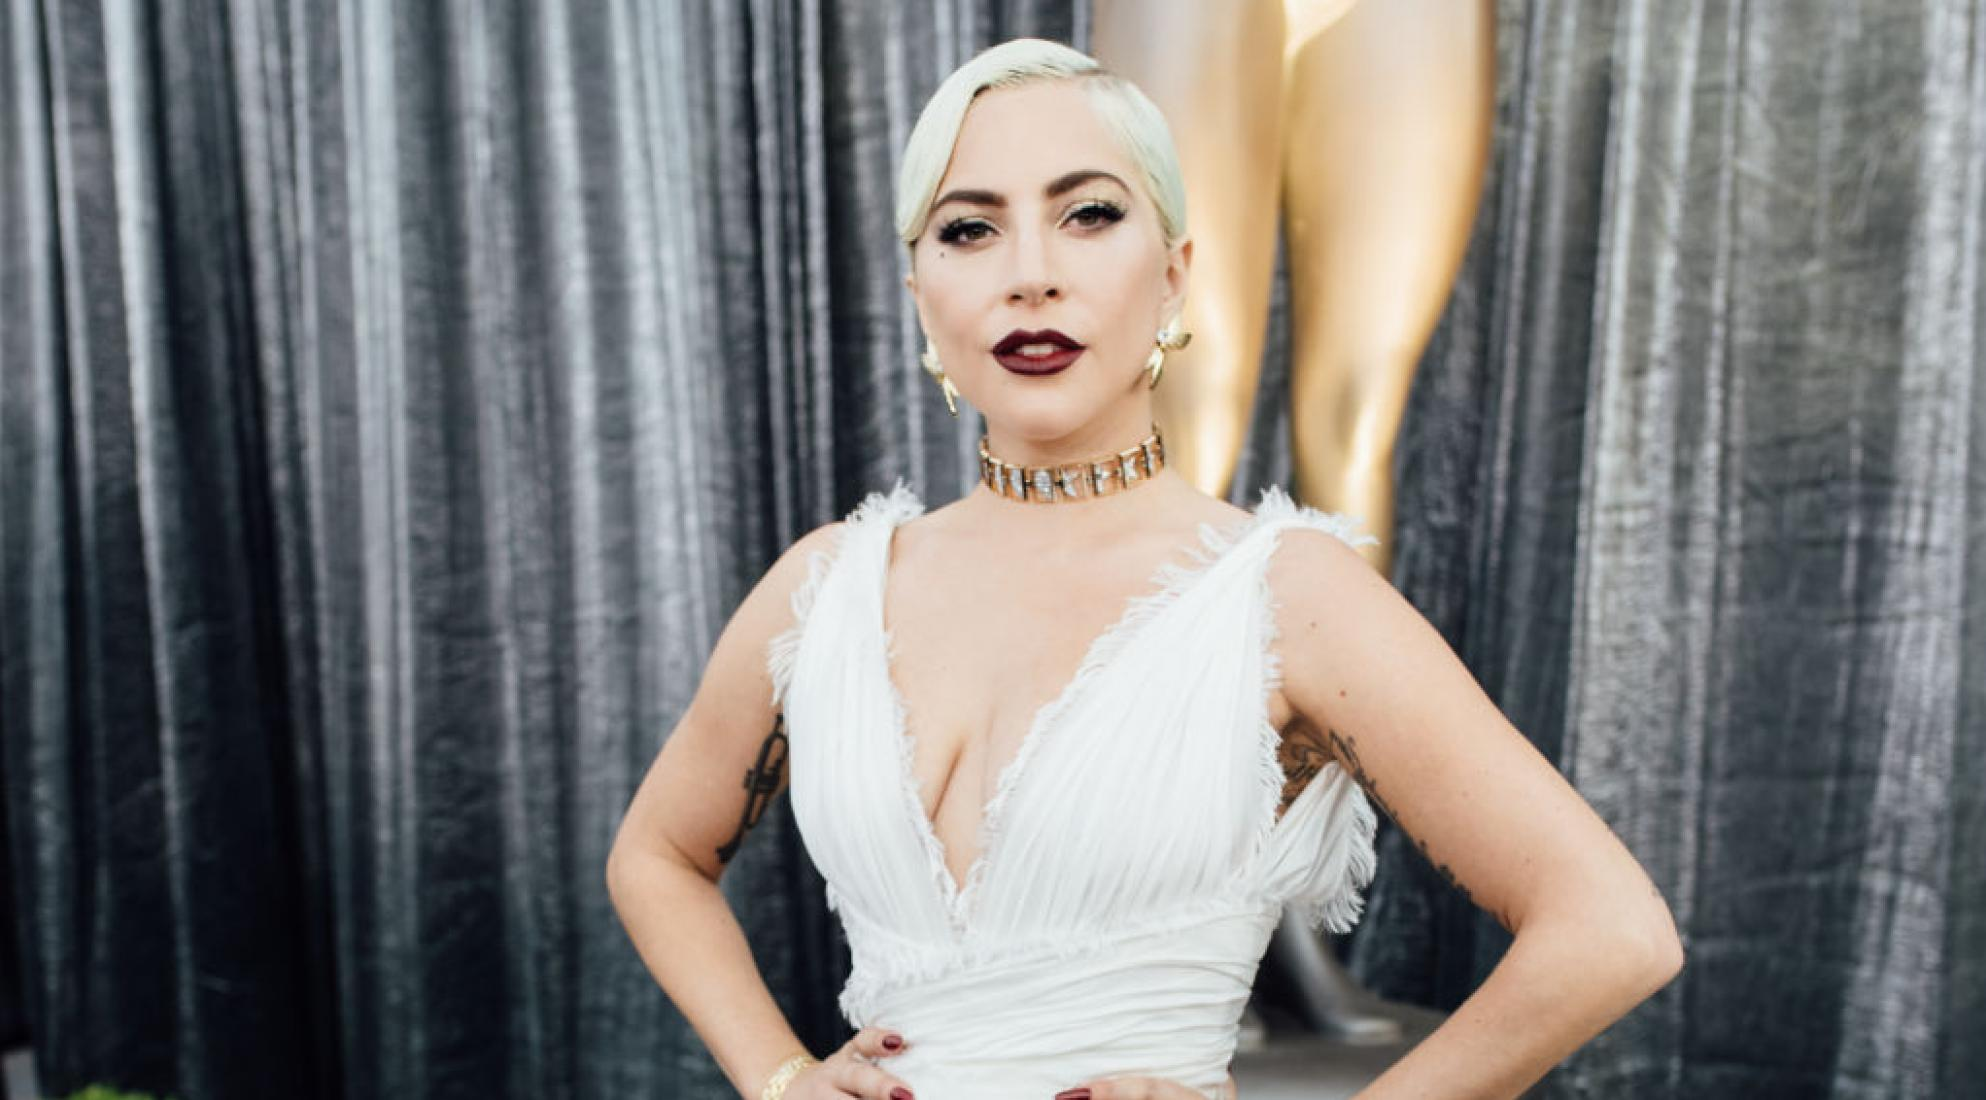 Lady Gaga attends 2019 Screen Actors Guild Awards